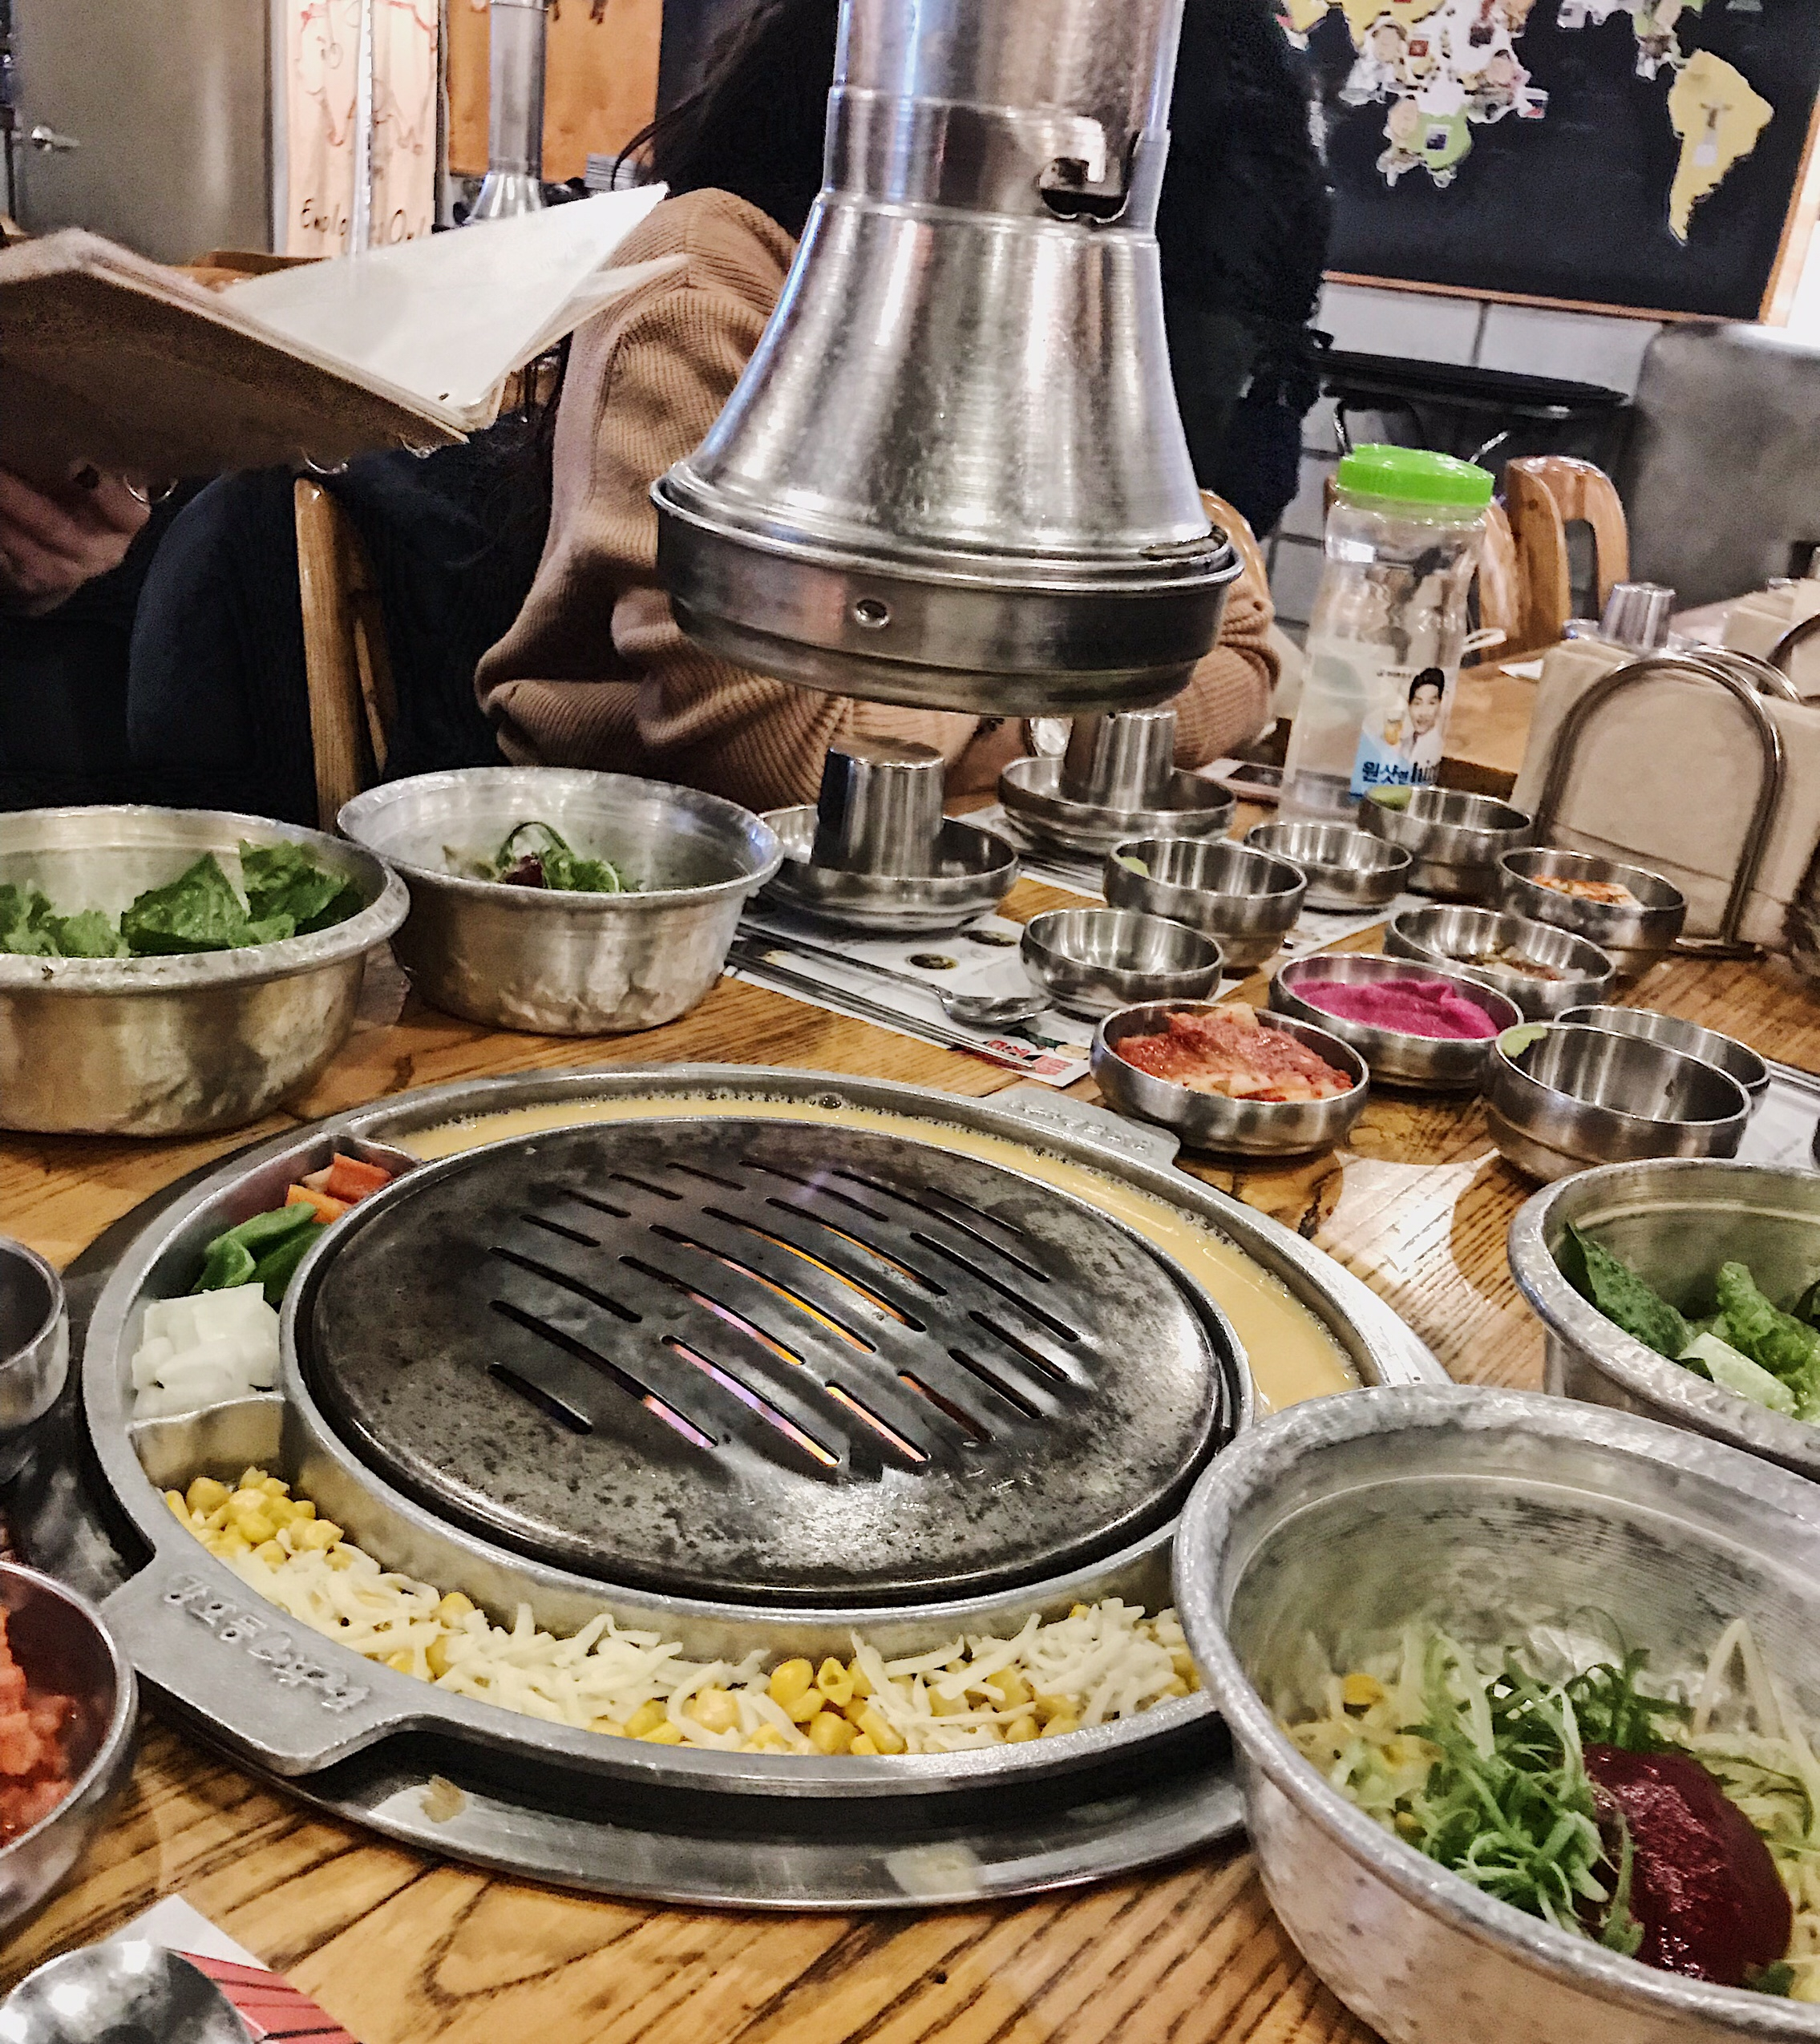 image of Korean food being cooked